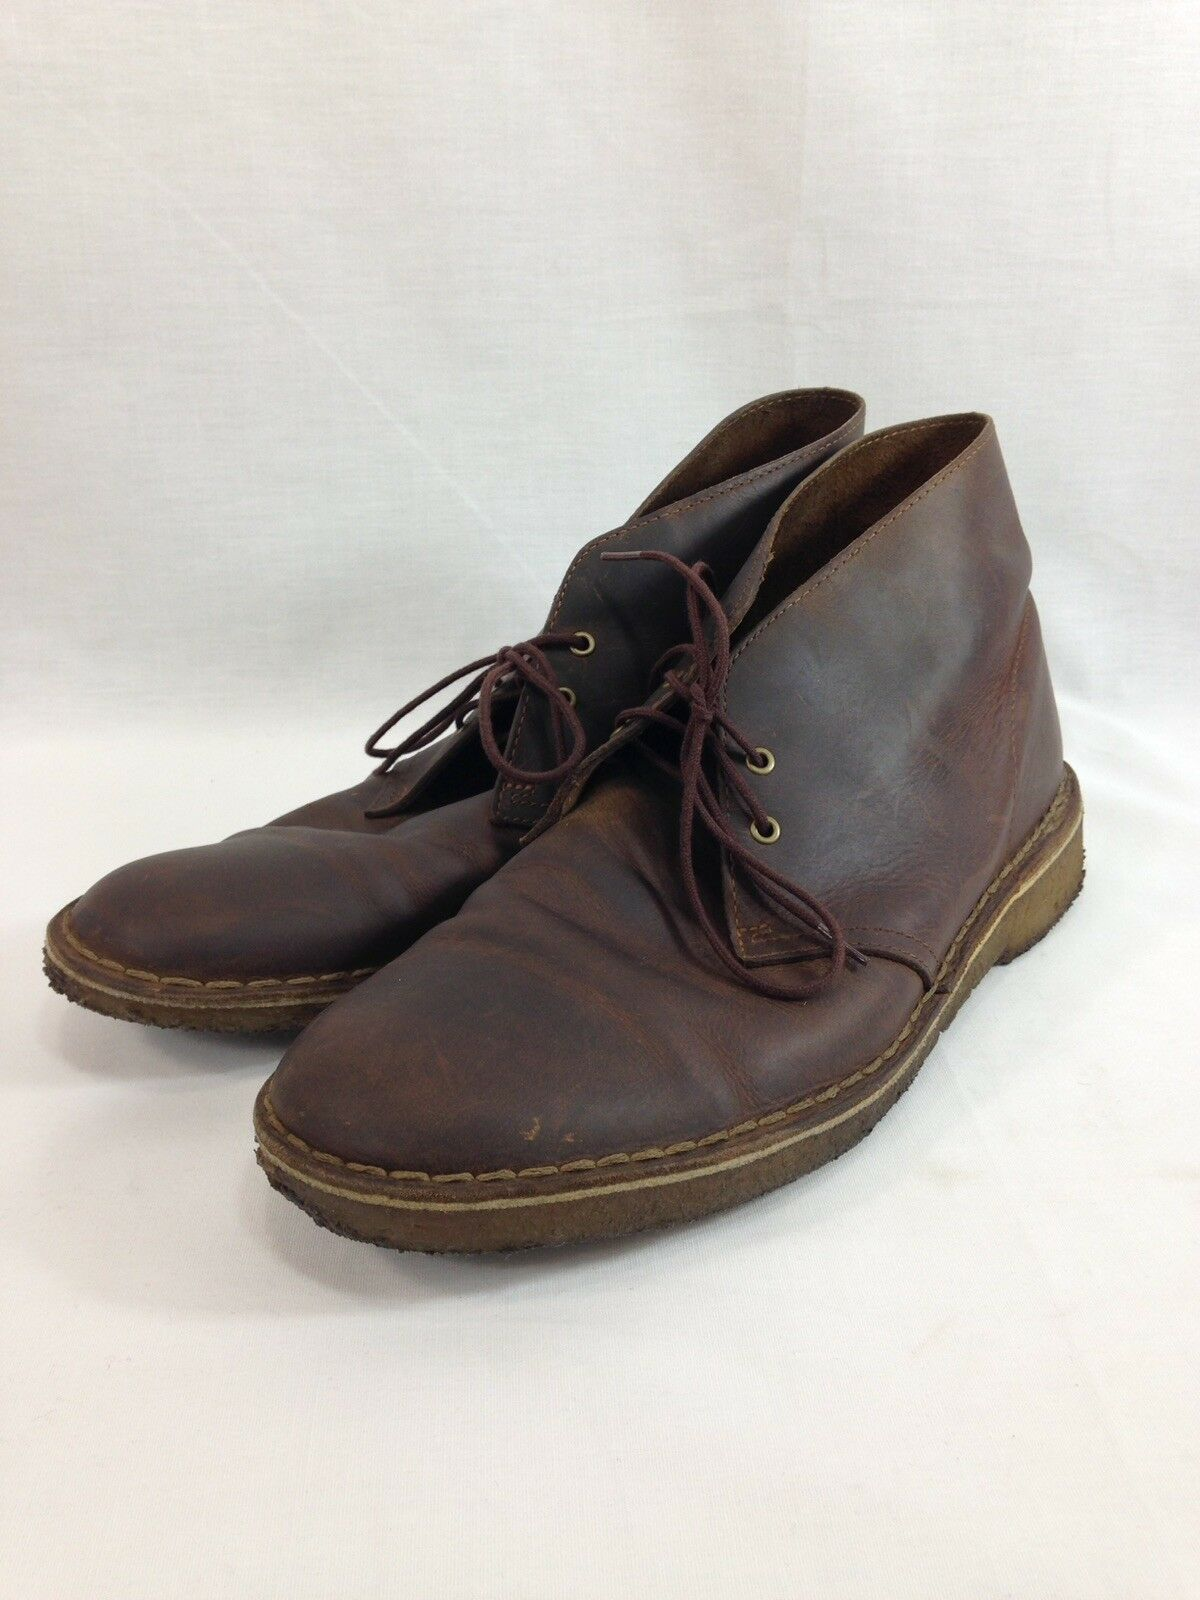 Clarks Originals Desert Boot shoes Mens 10 M Brown Leather Chukka Lace Gum Sole